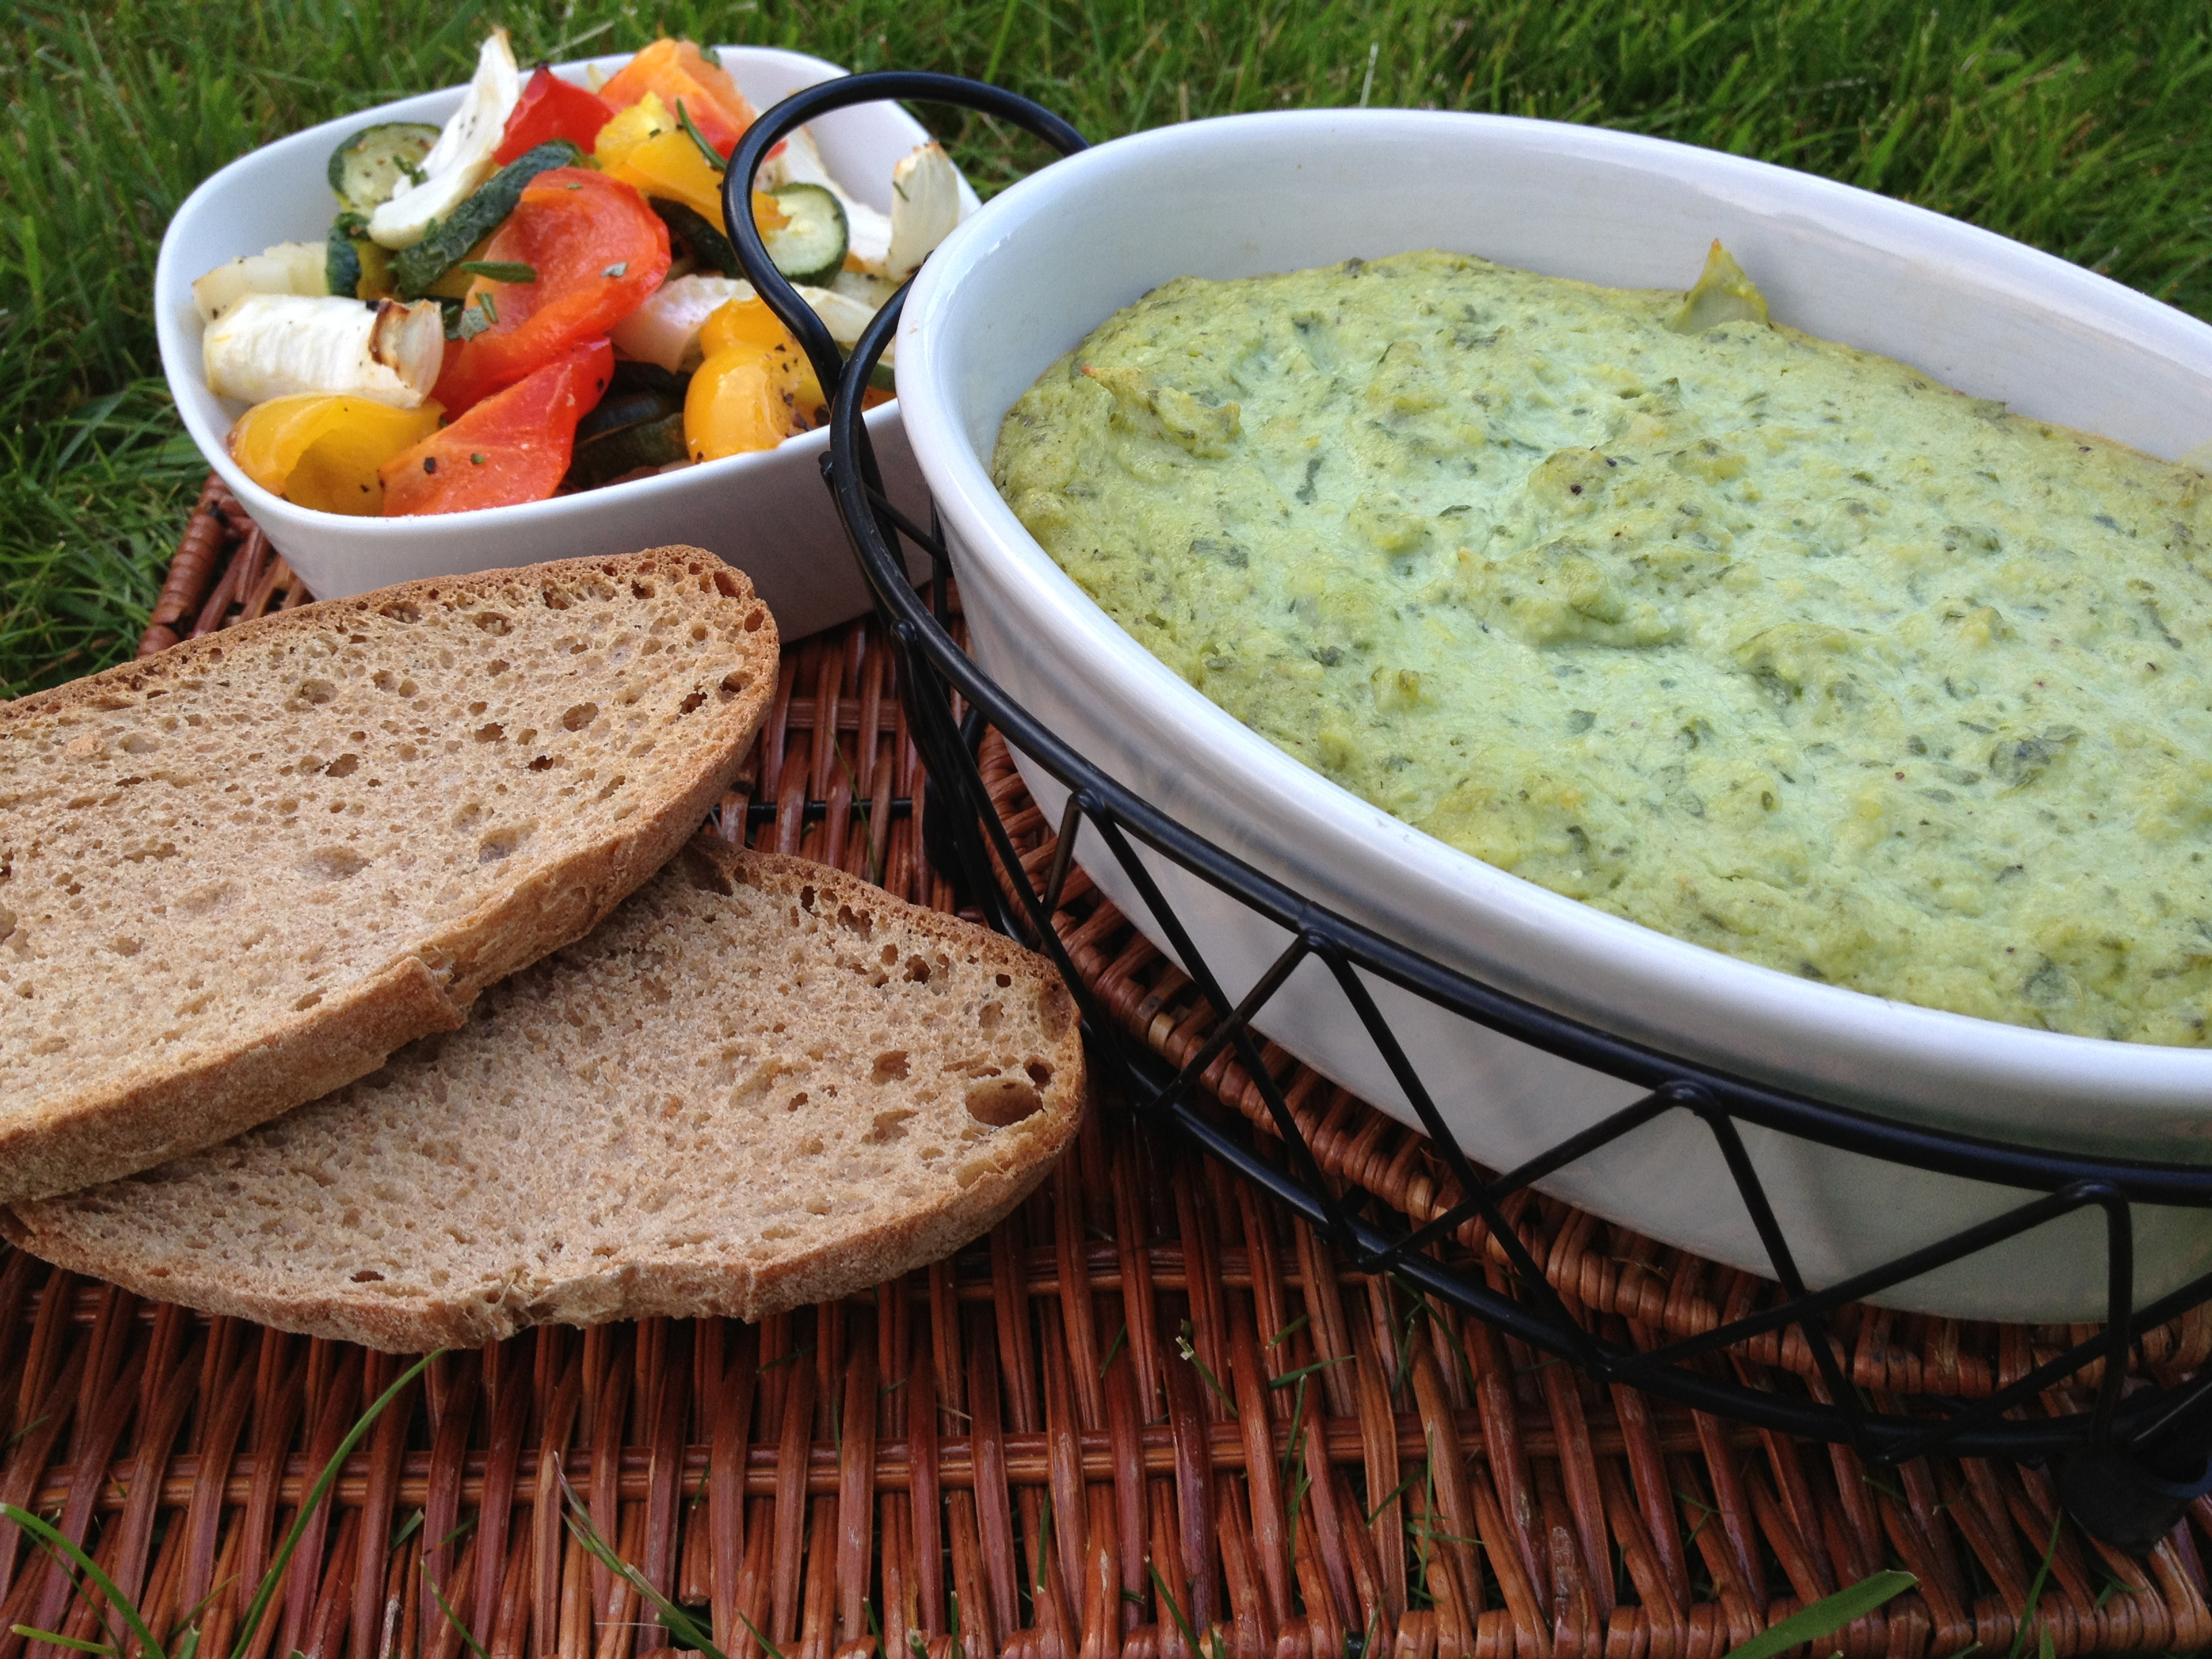 Creamy Artichoke Spinach Dip (without the junk)